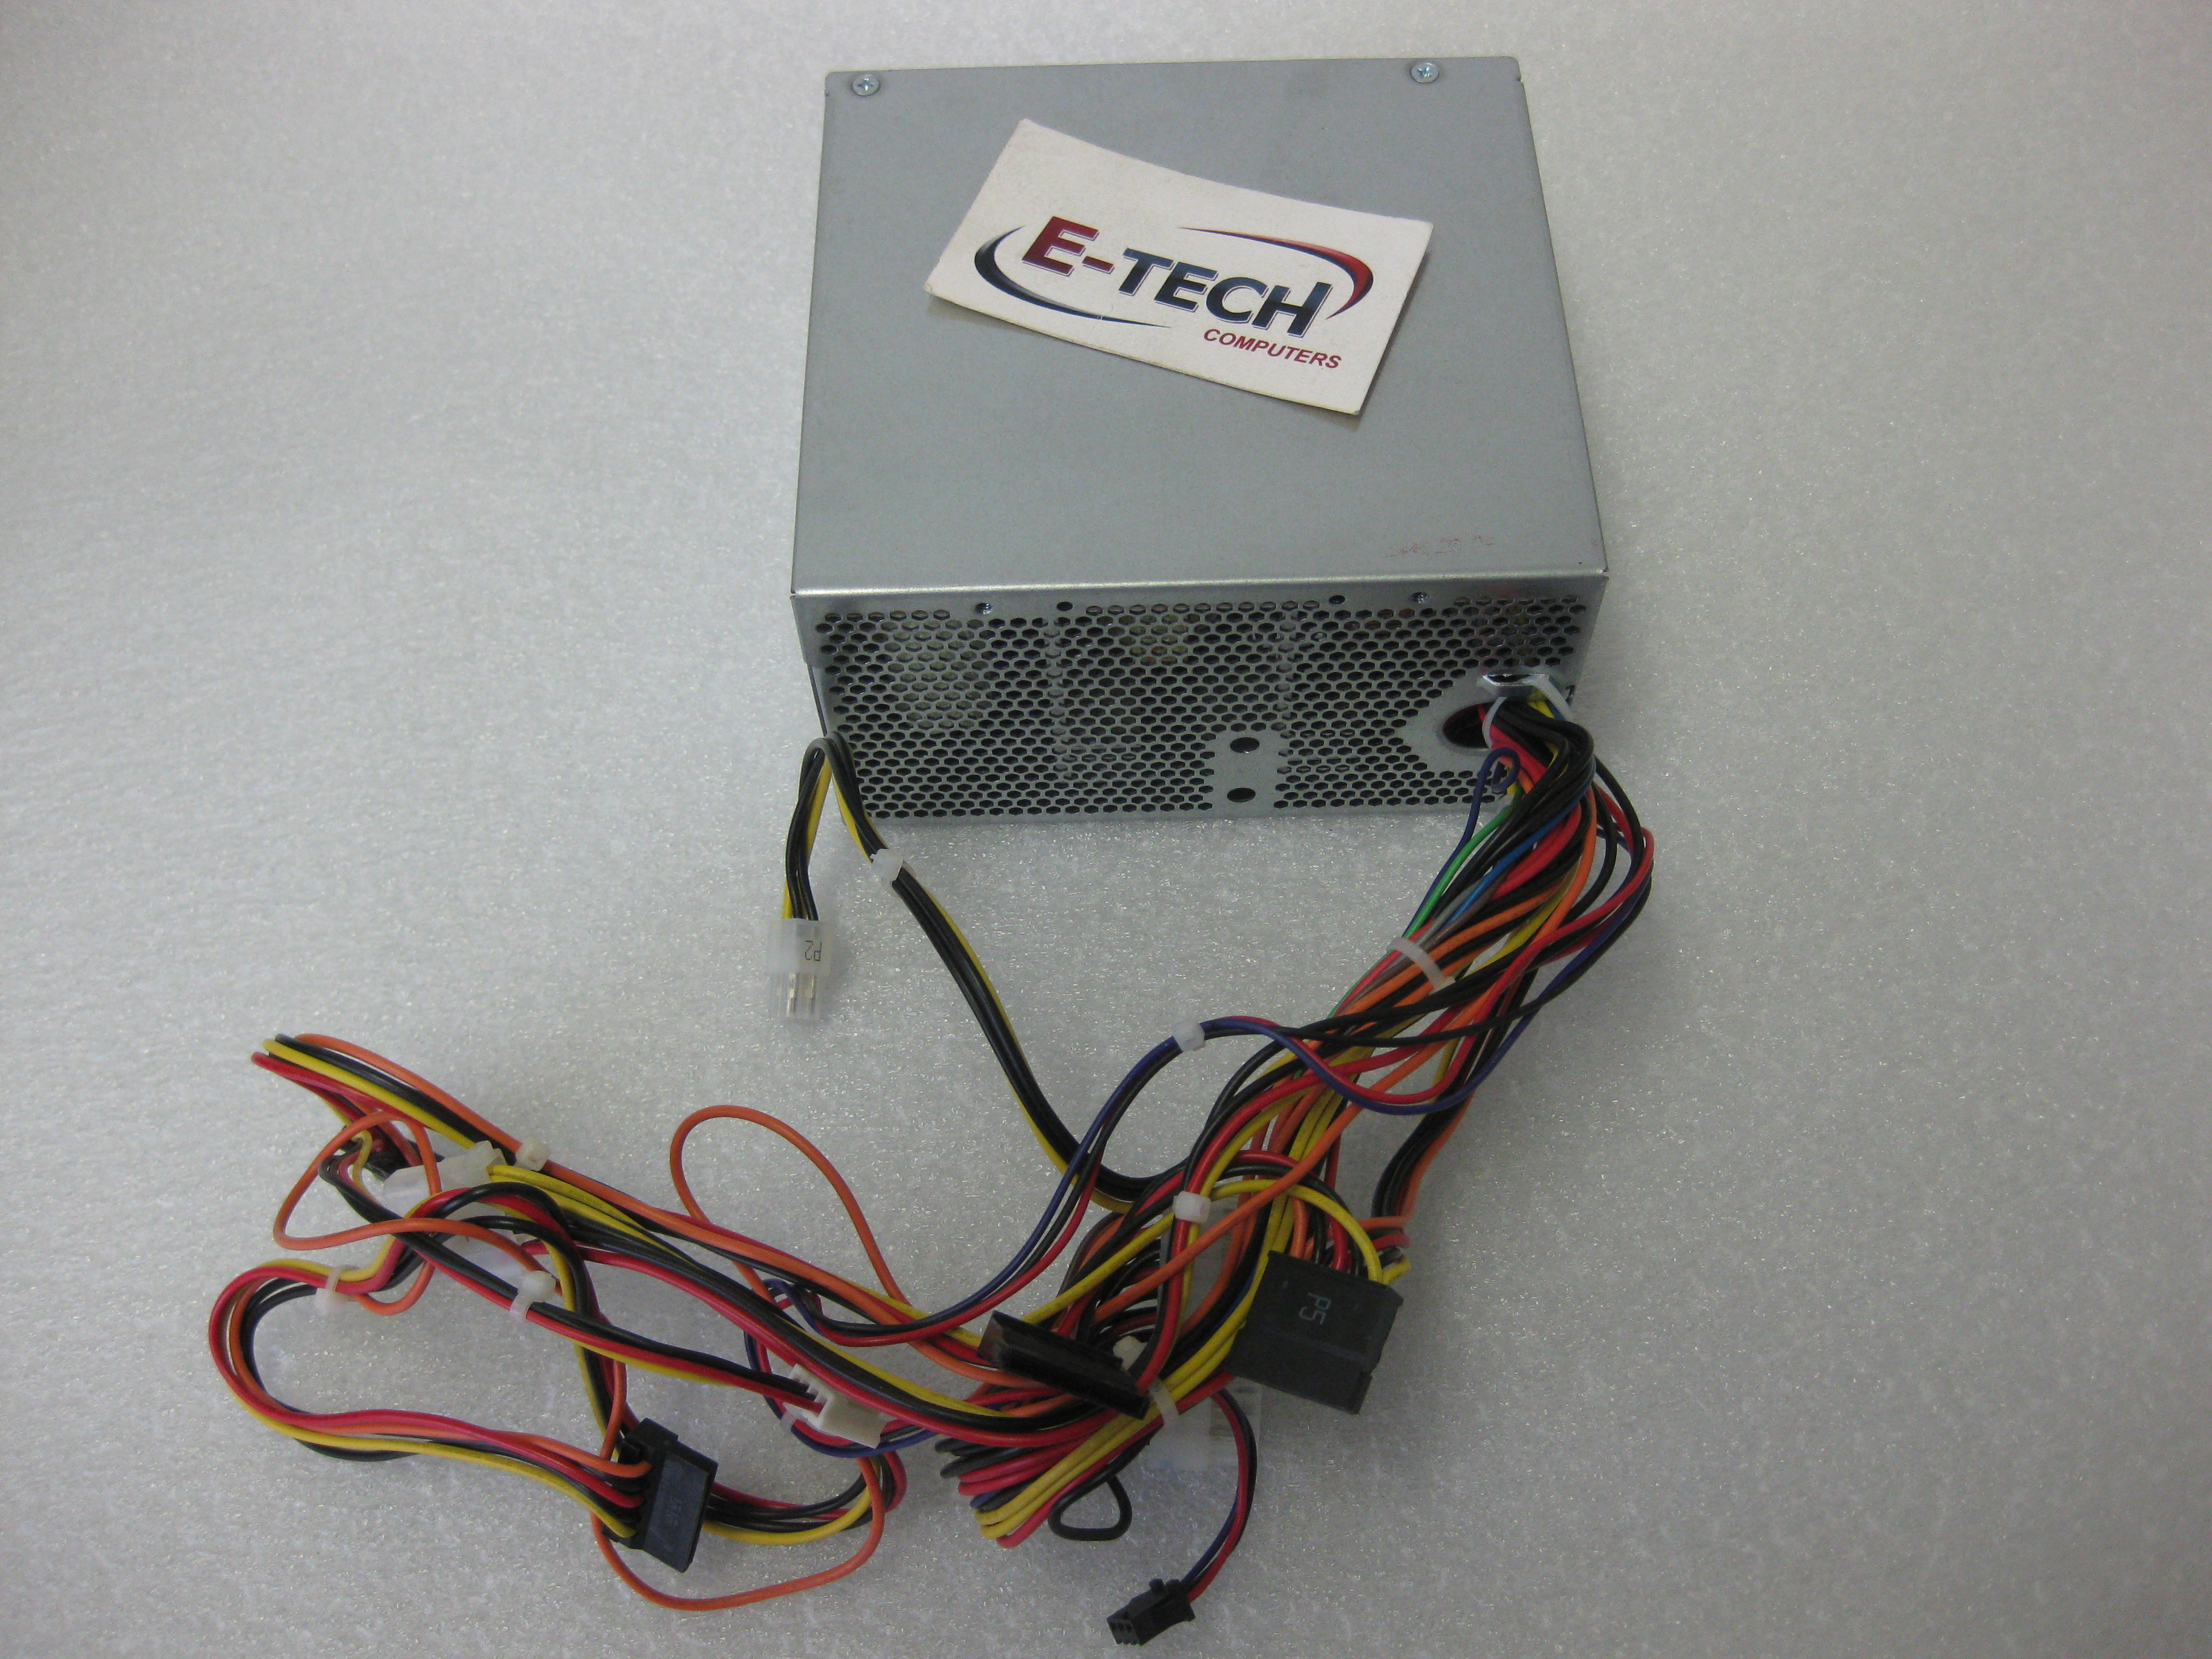 Purolator Call Center 41a9684 Lenovo 280w Power Supply M58e A57 M57p M57 Ebay